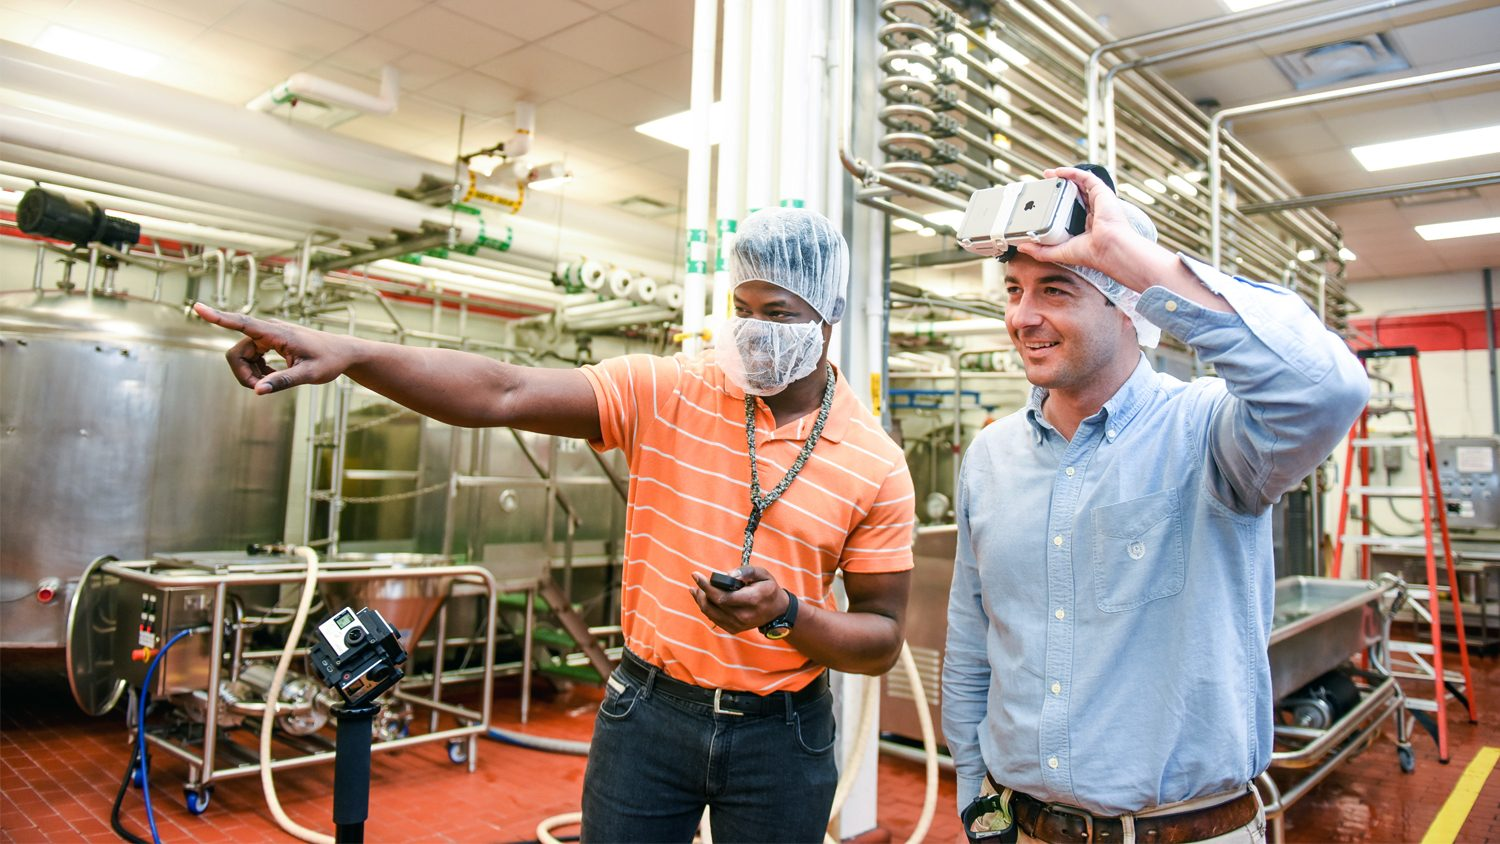 Researchers look at food plant